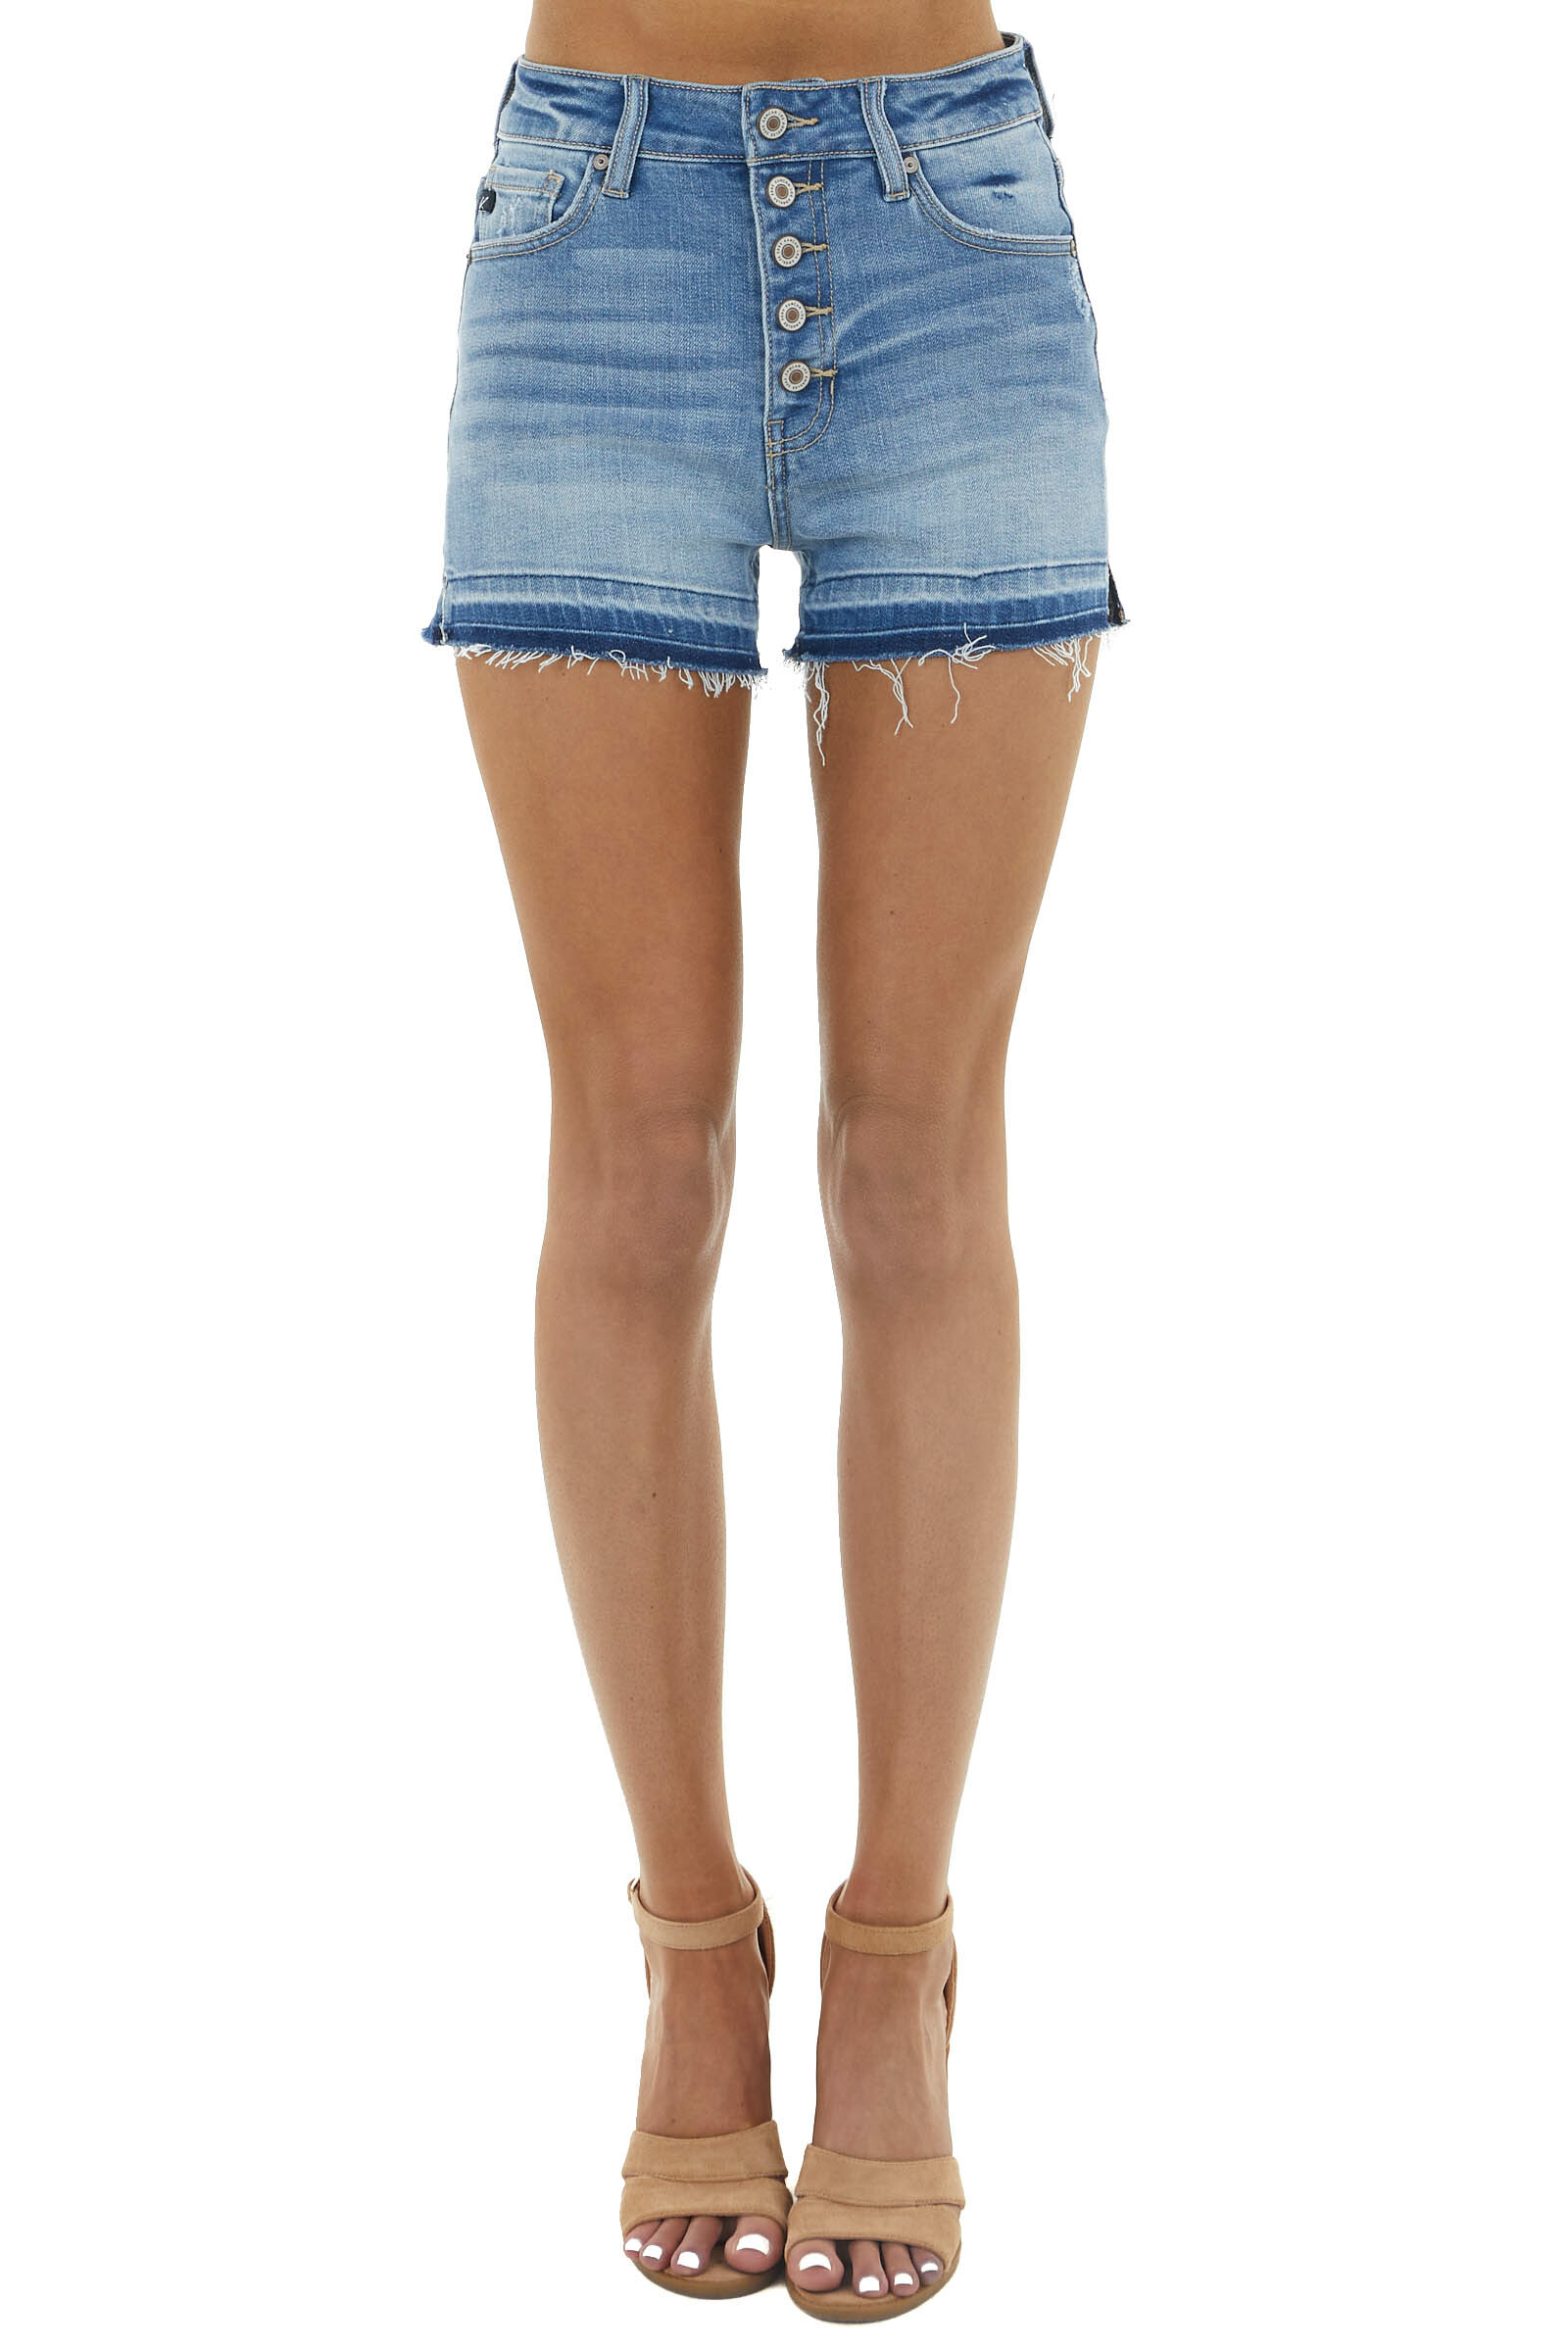 Medium Wash High Rise Button Up Shorts with Frayed Hemline